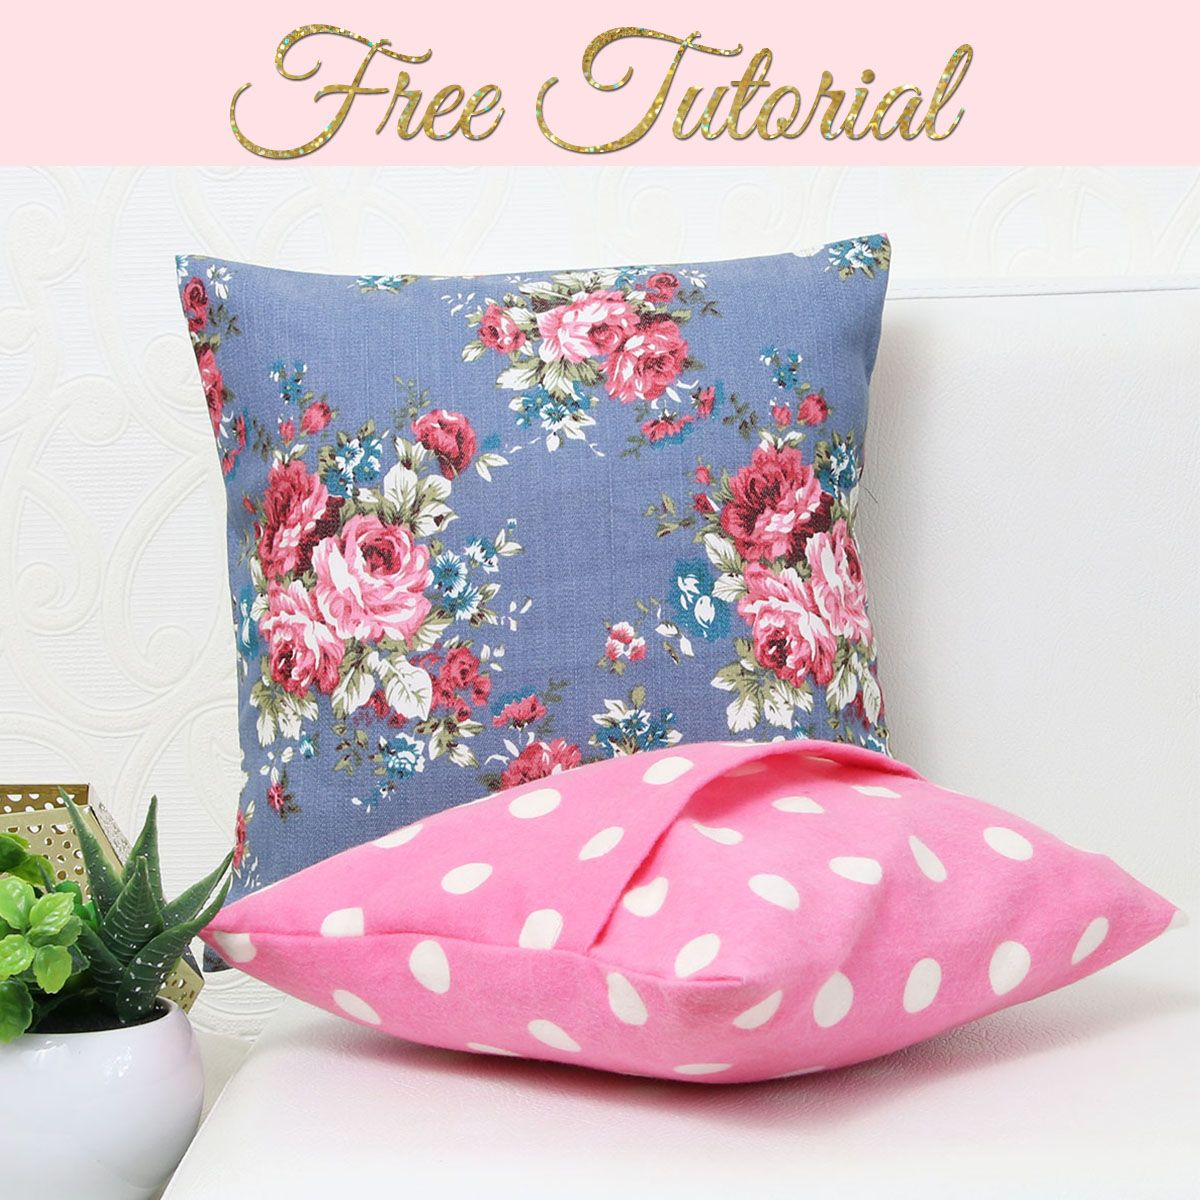 How to Make Cushion Covers | DIY Envelope Covers i